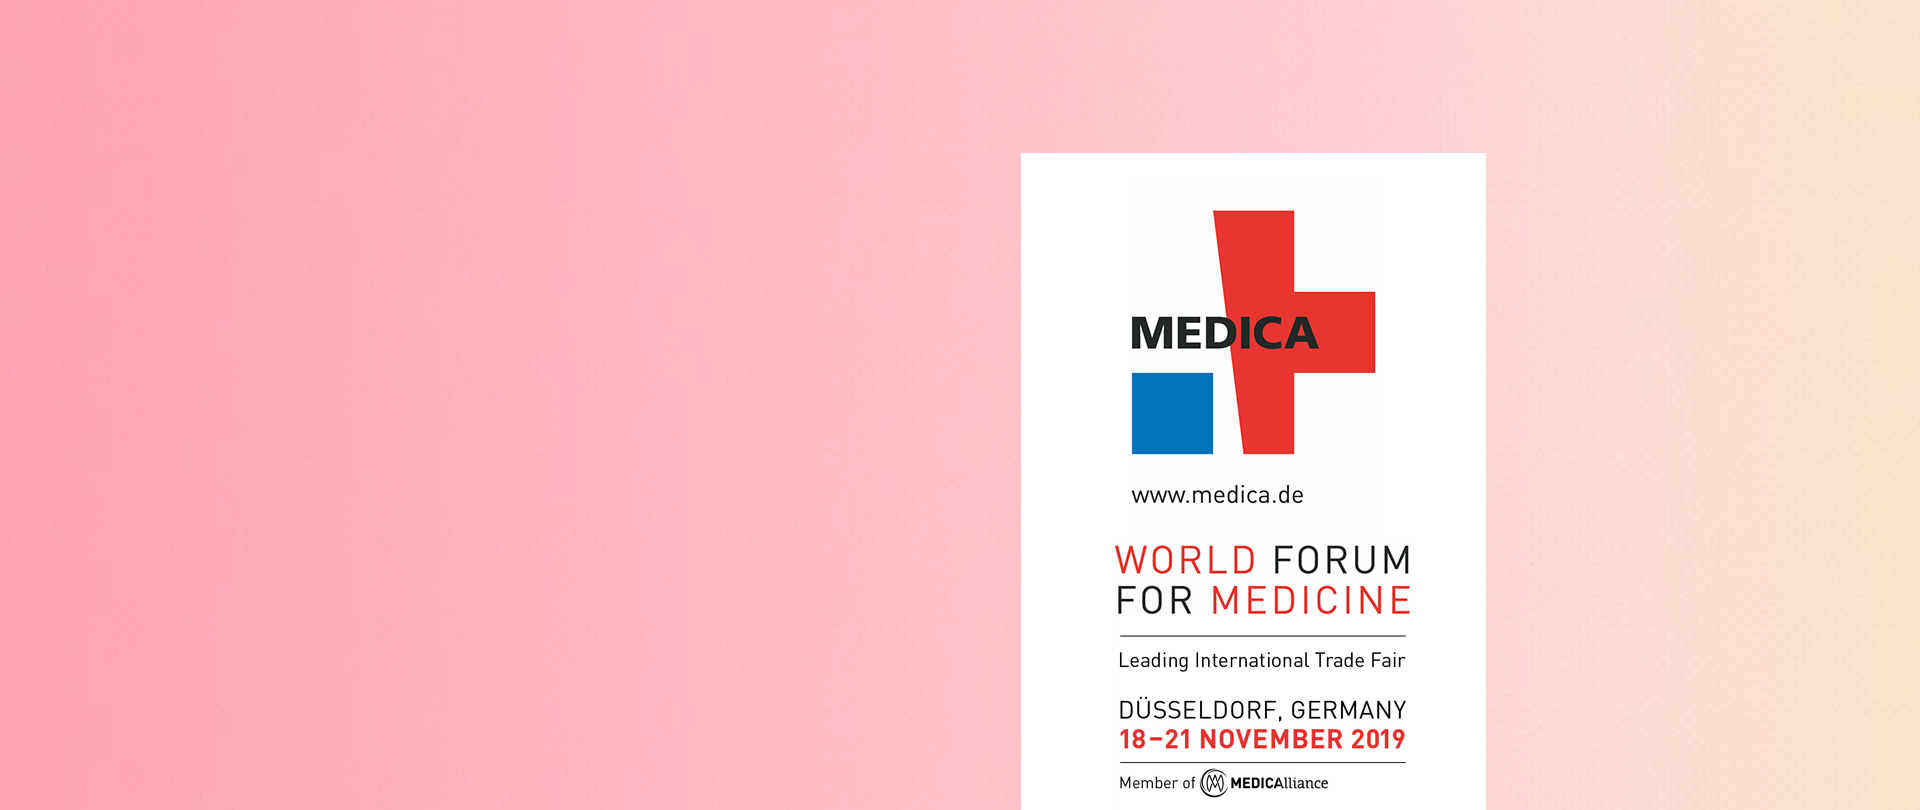 World Forum for Medicine 2019